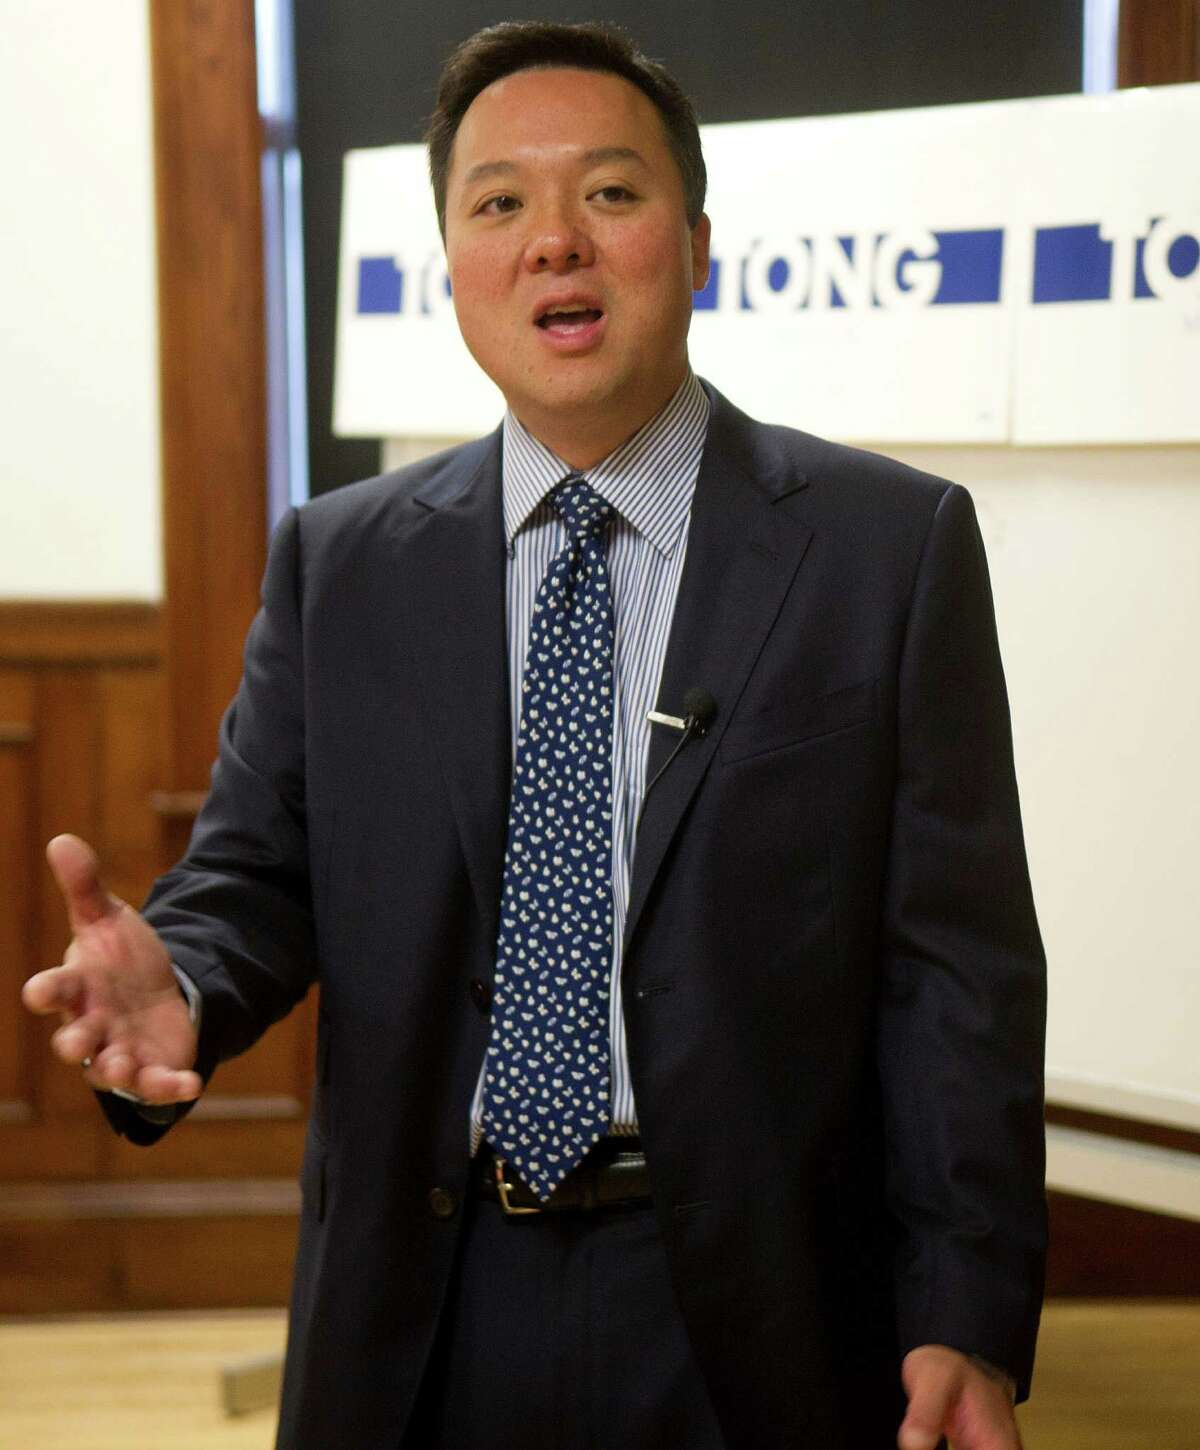 Stamford mayoral candidate William Tong speaks at the Stamford Innovation Center about his three-point start-up plan on Thursday, August 1, 2013.